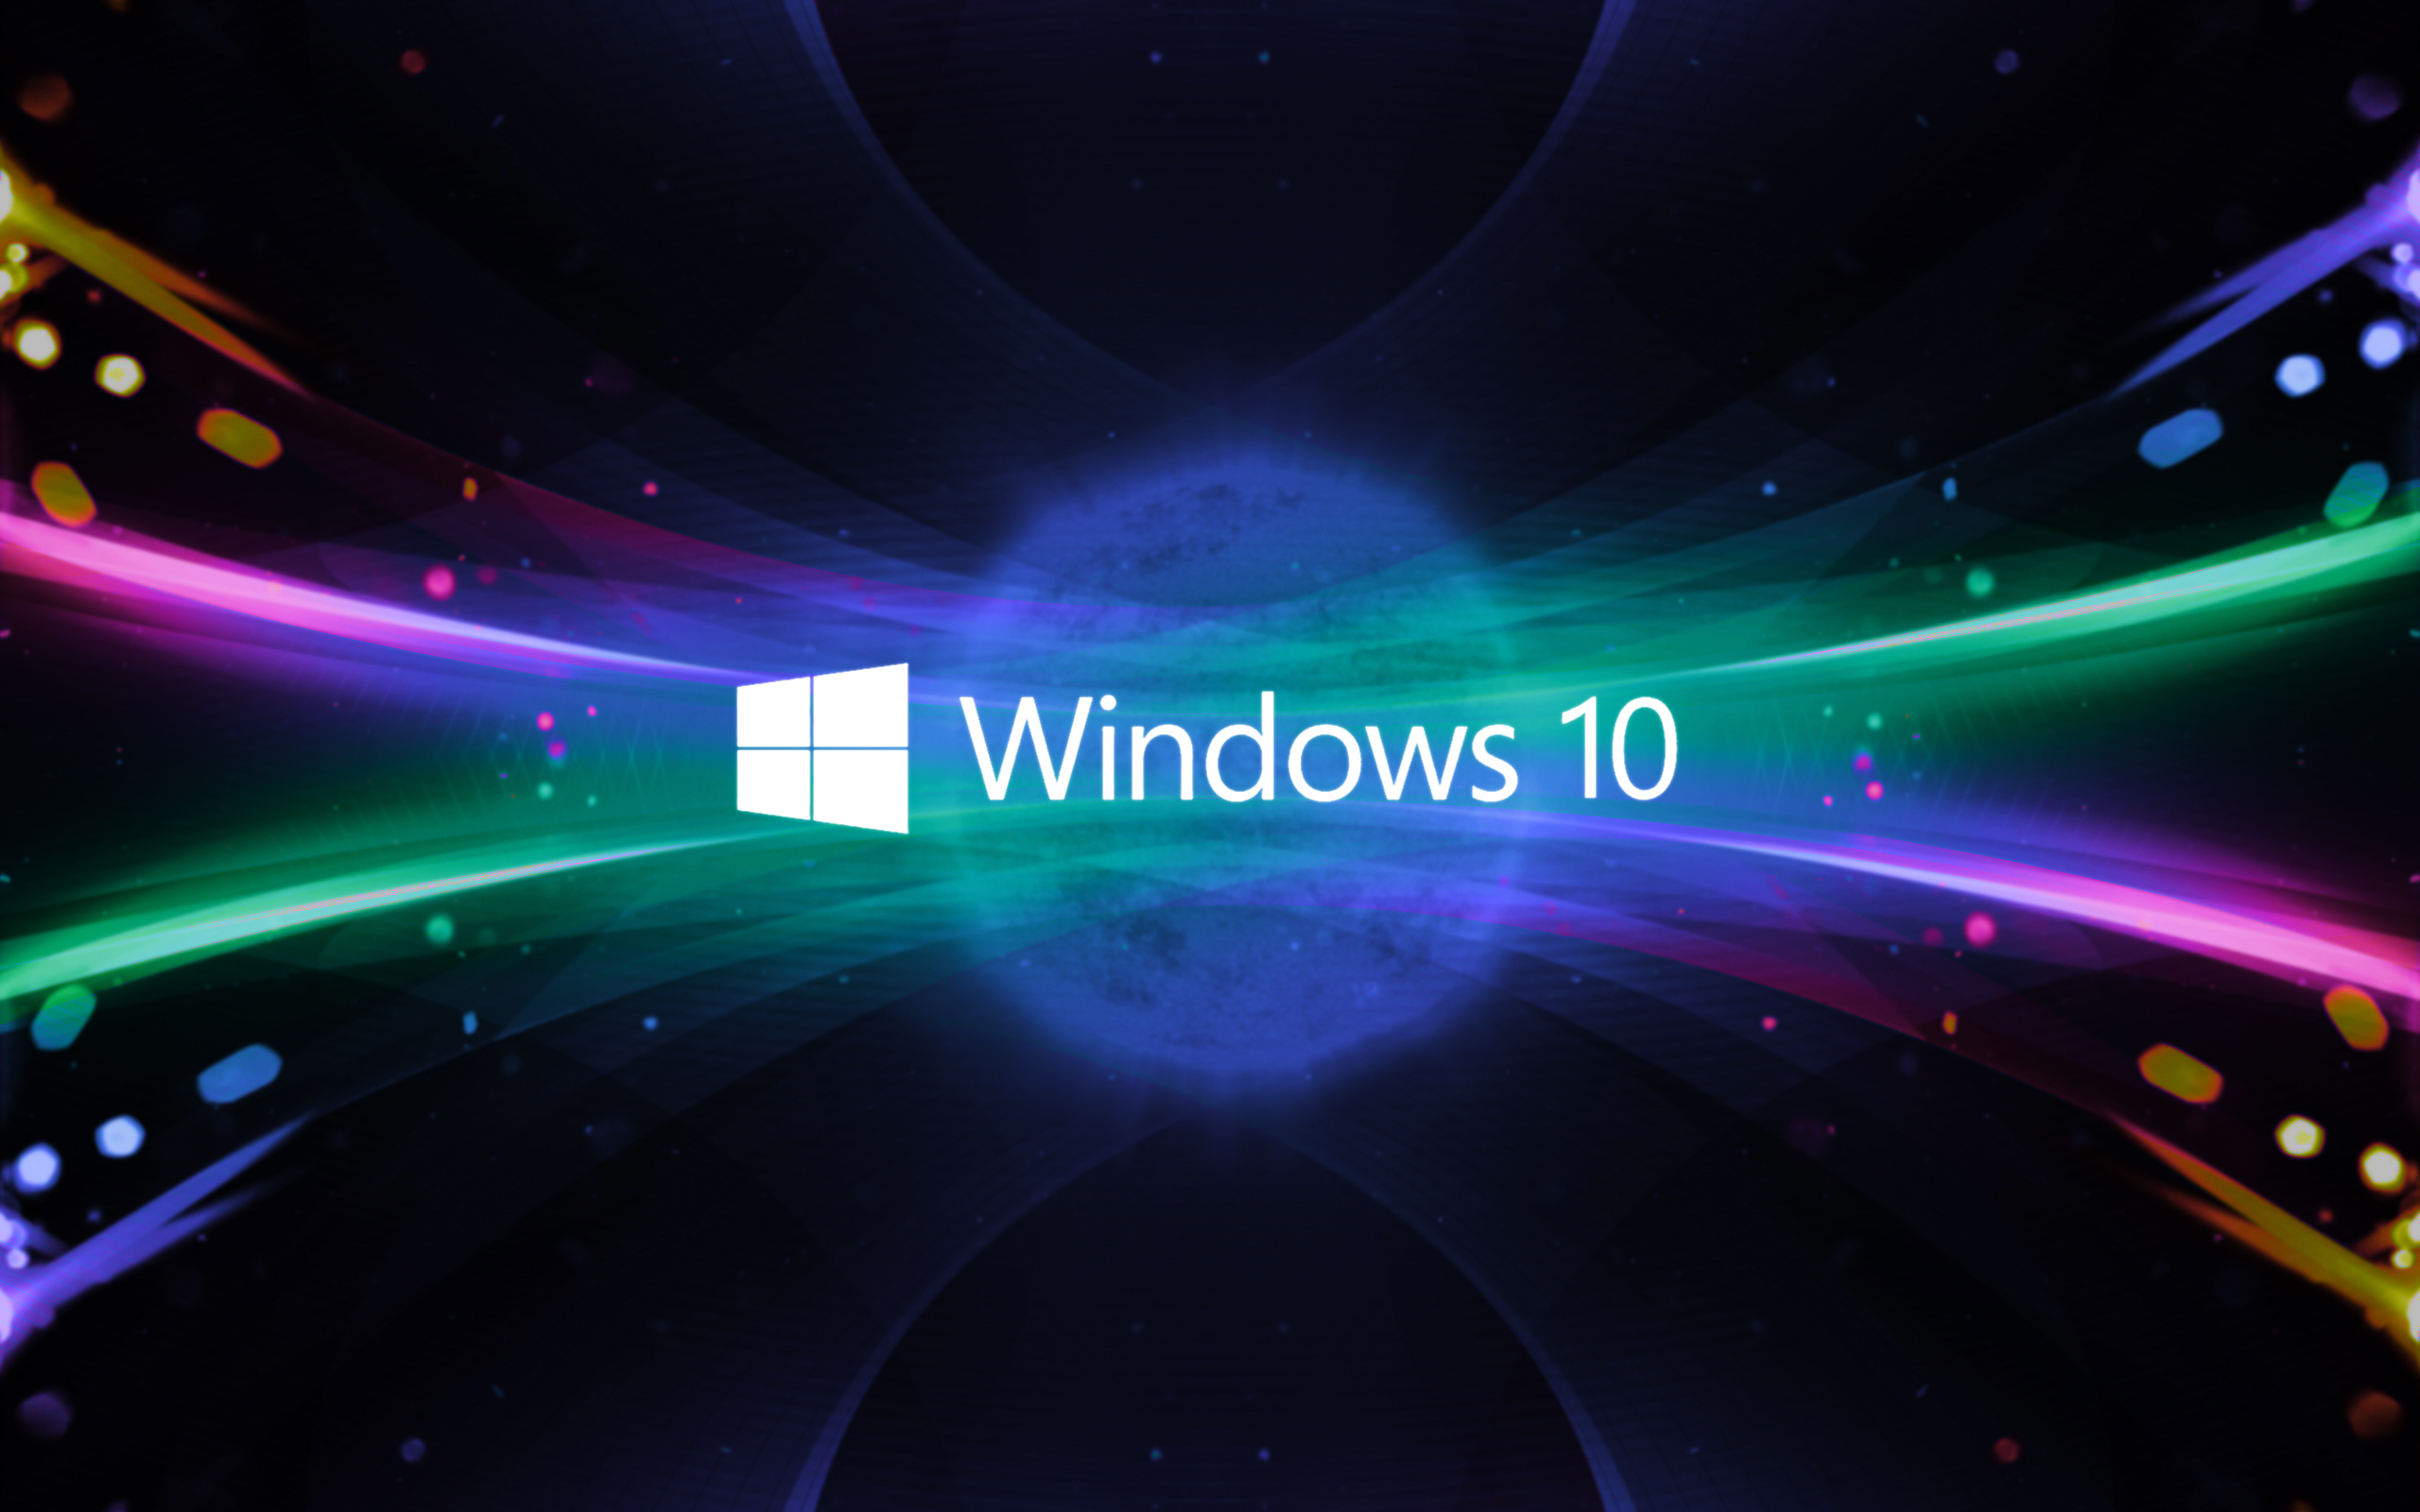 Windows 10 Wallpapers 2560x1600